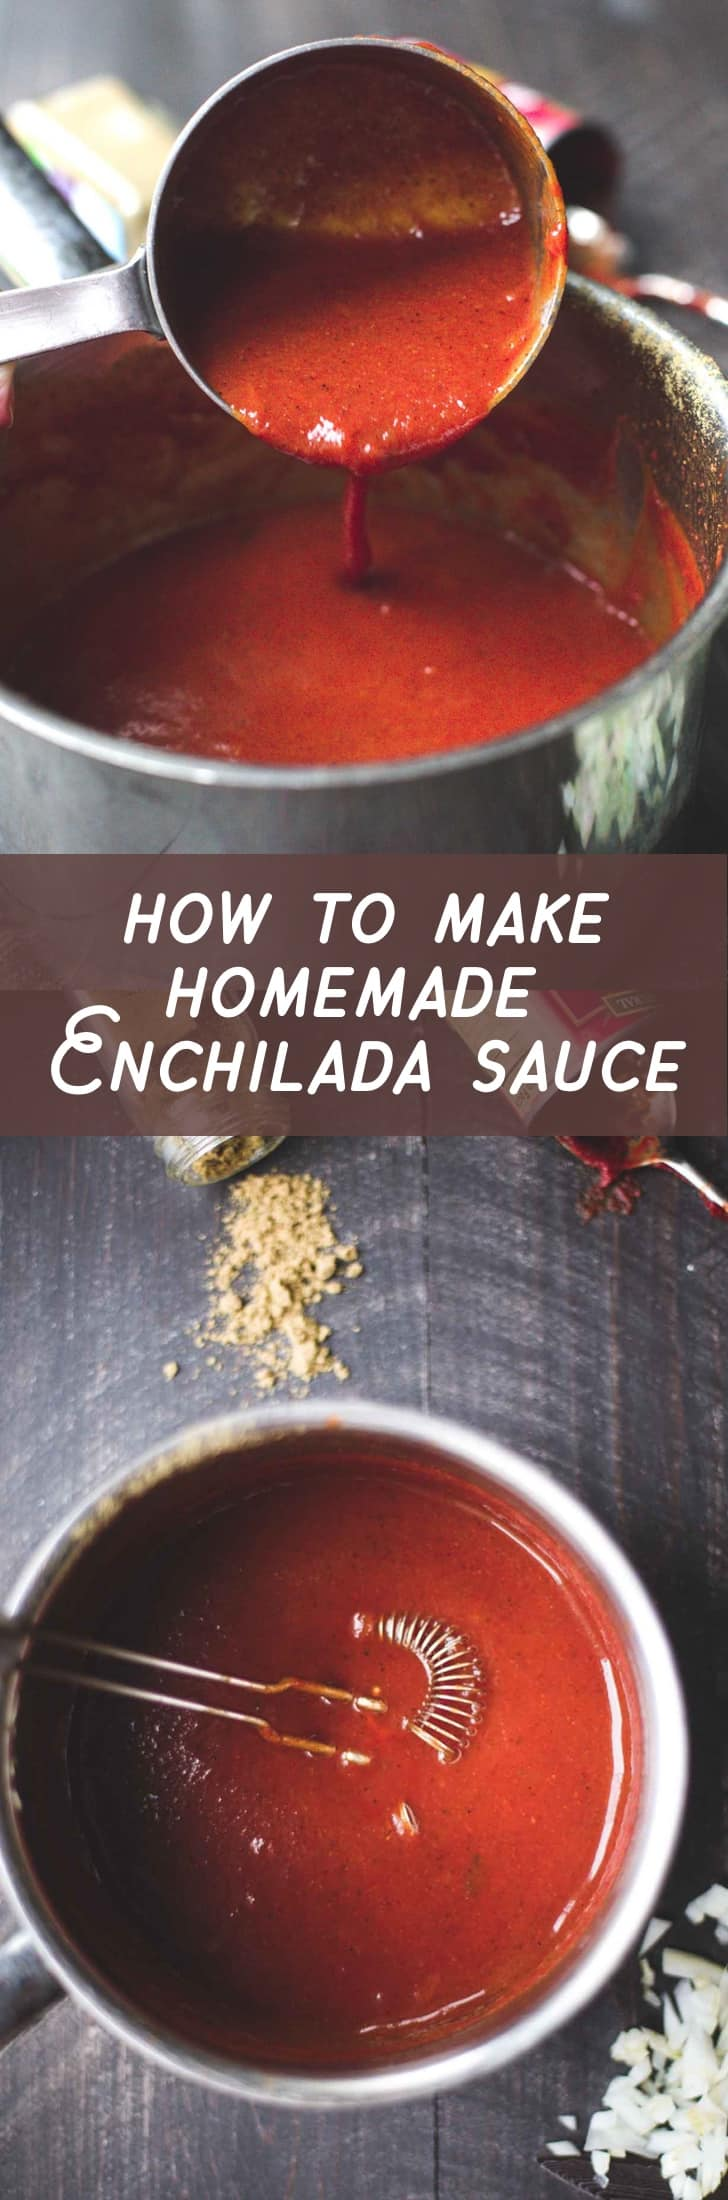 Make homemade enchilada sauce in 10 minutes using pantry staples that you probably have in your kitchen this very second. Even better than a store-bought version, this homemade sauce is gluten-free, paleo-friendly, and can be totally customized to your spice and flavor preferences. Yum!